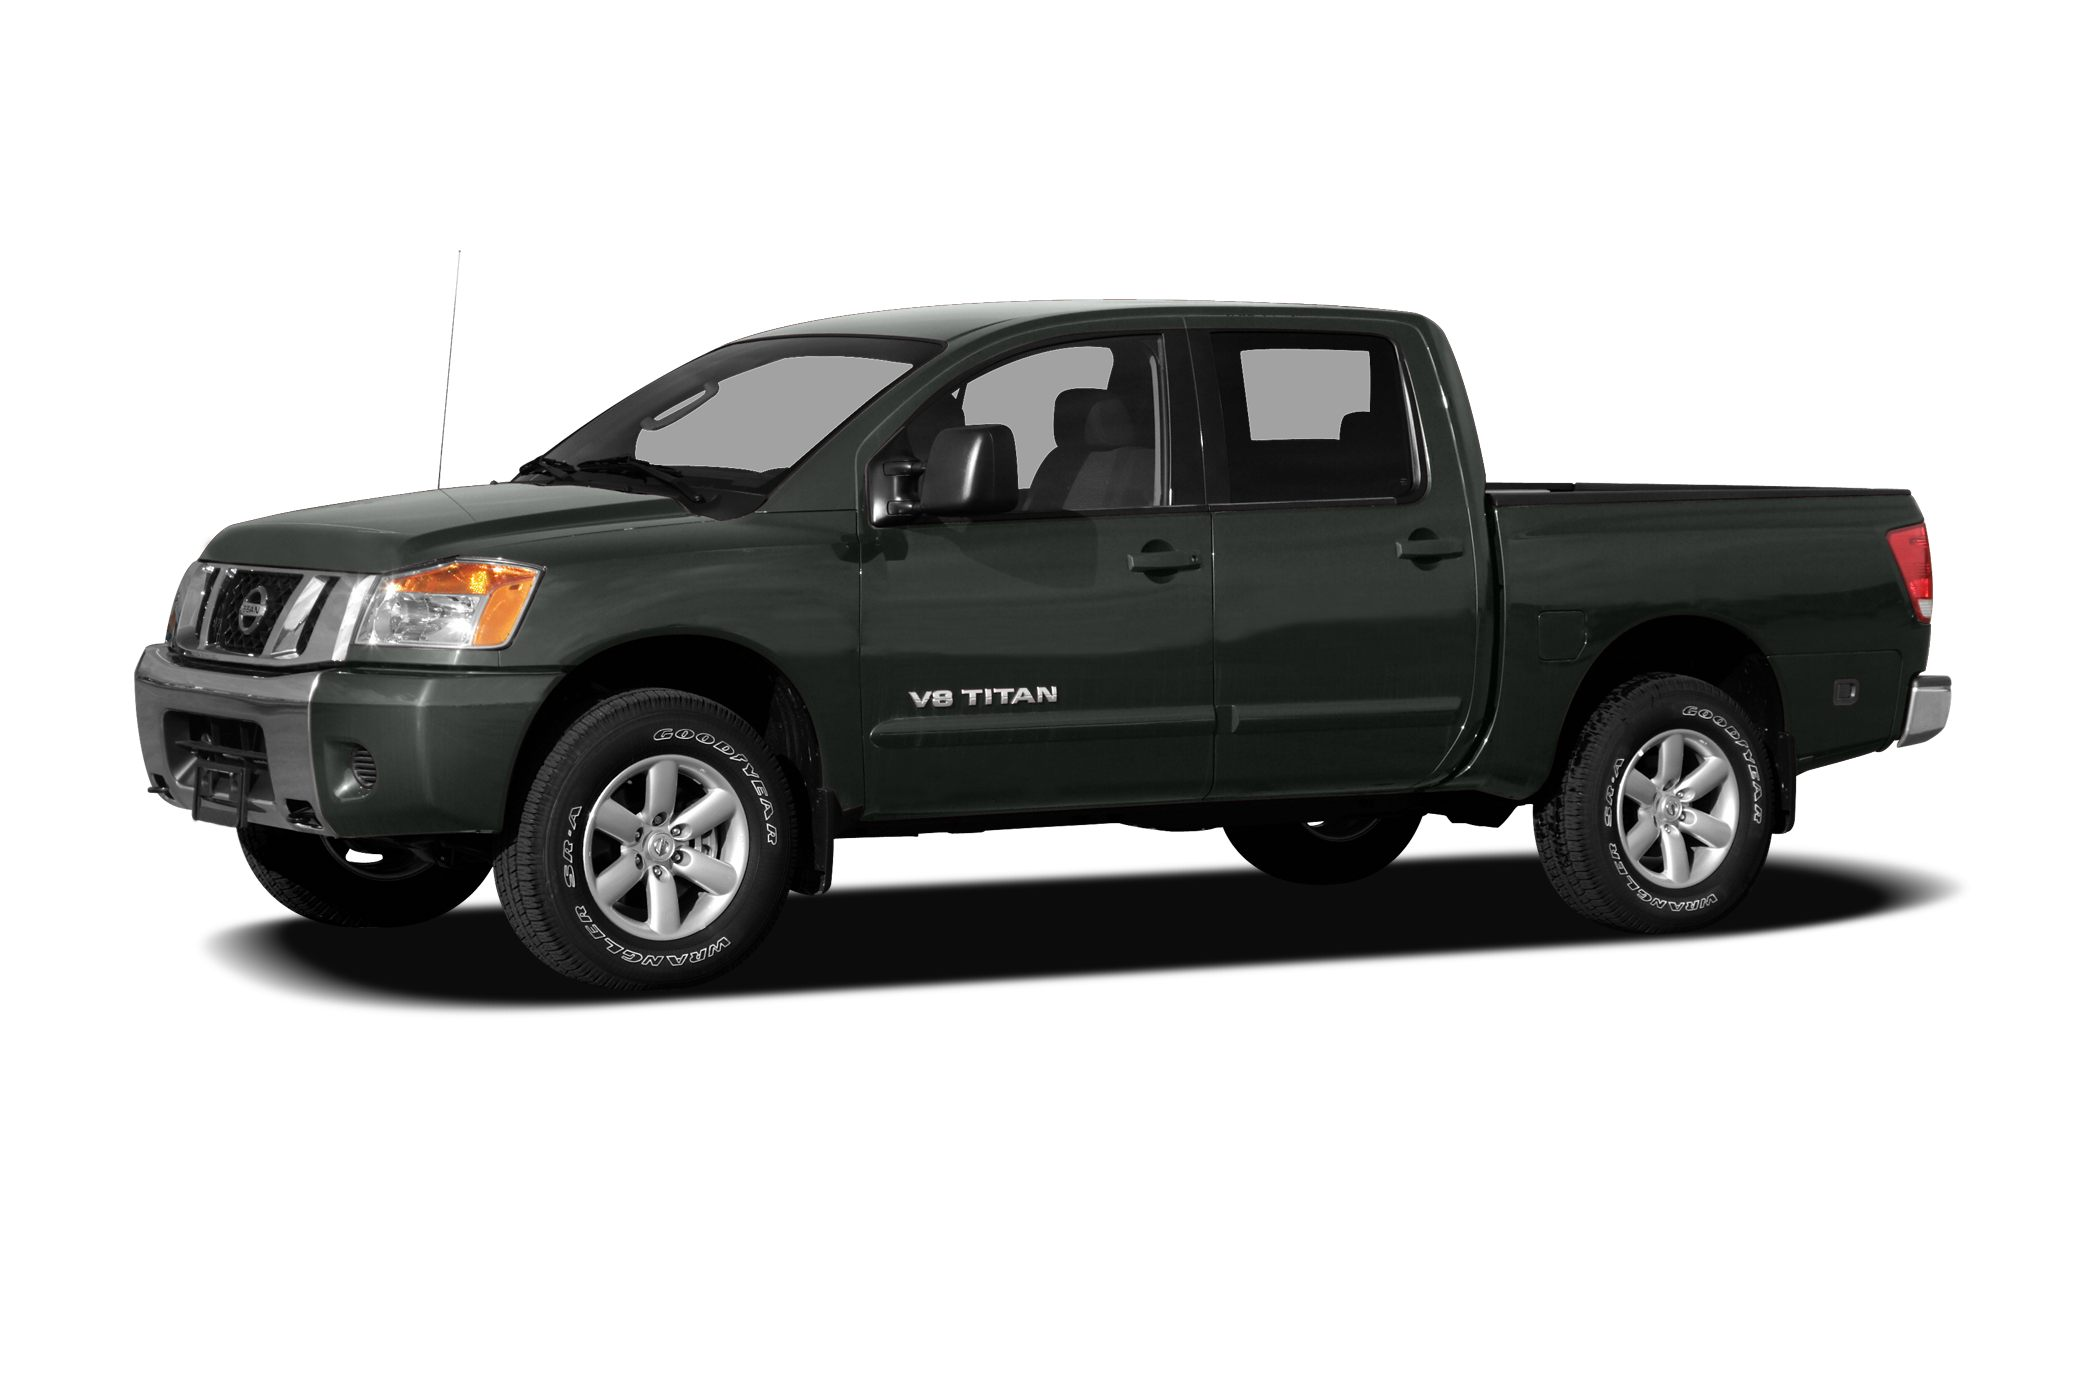 2008 Nissan Titan PRO-4X Crew Cab Crew Cab Pickup for sale in Malvern for $21,985 with 60,611 miles.